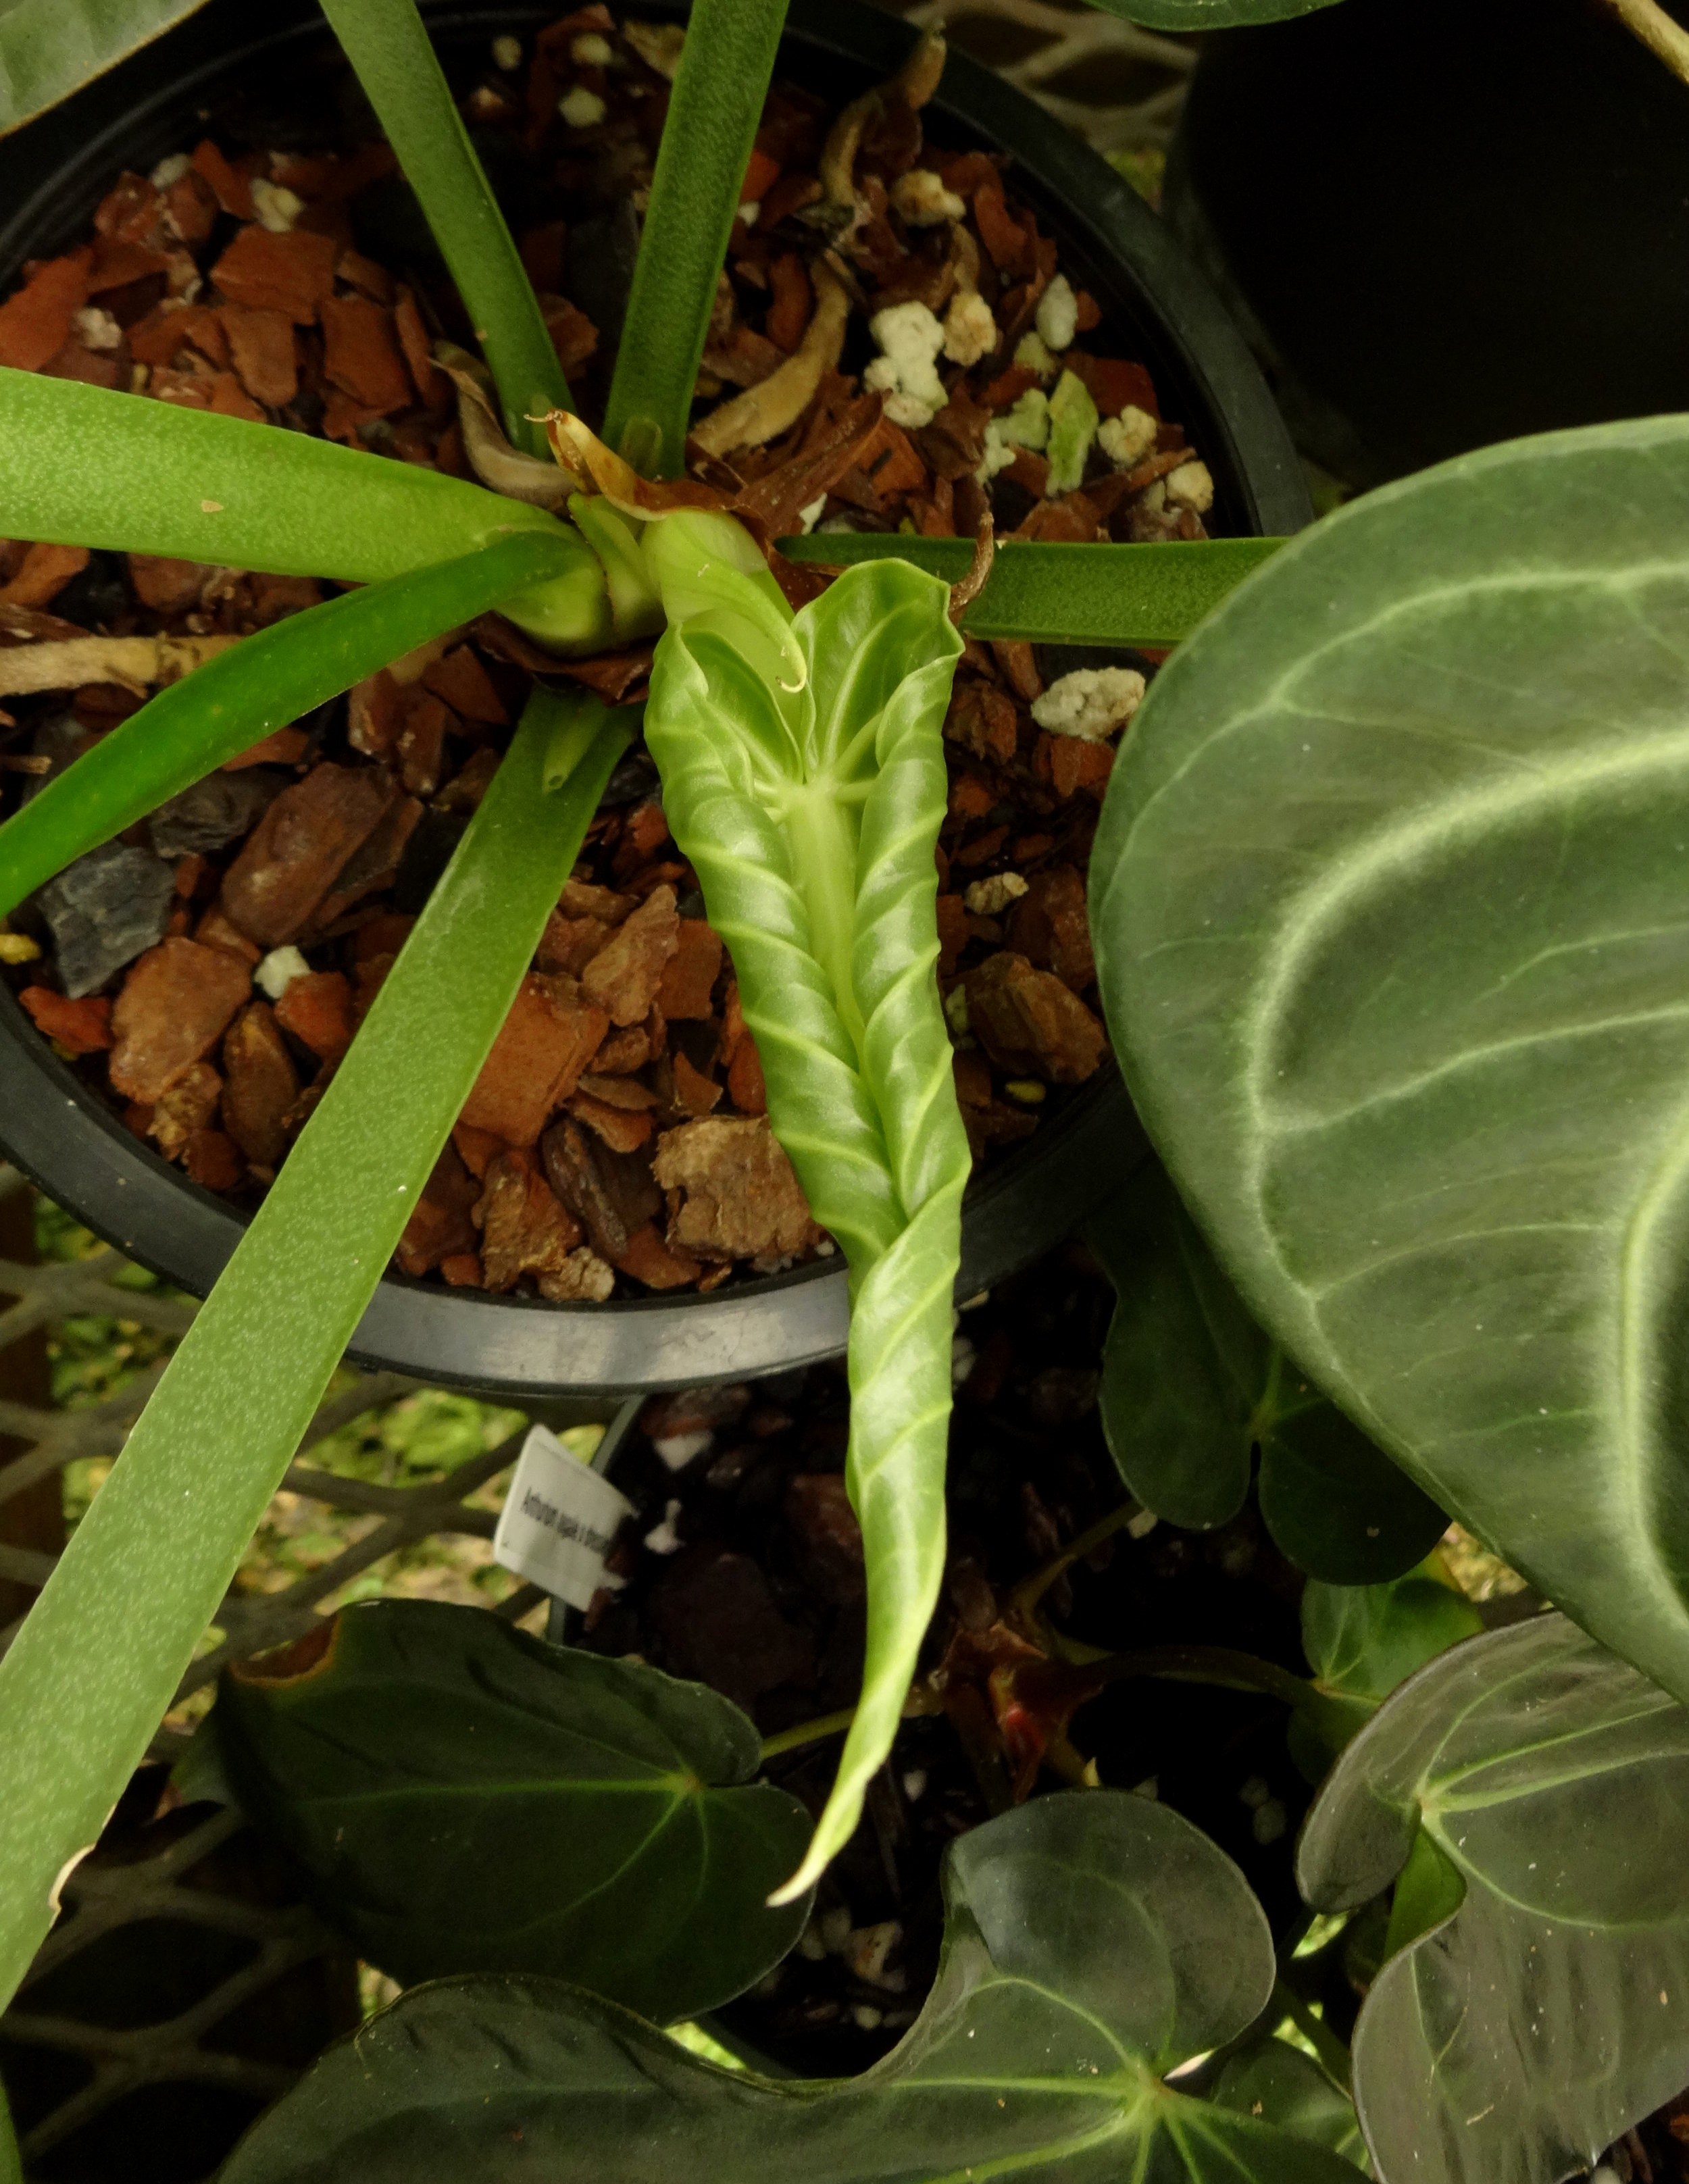 Anthurium villenaorum  ( sp. ined .) unfolding a new leaf in California. Note involute vernation on this leaf.